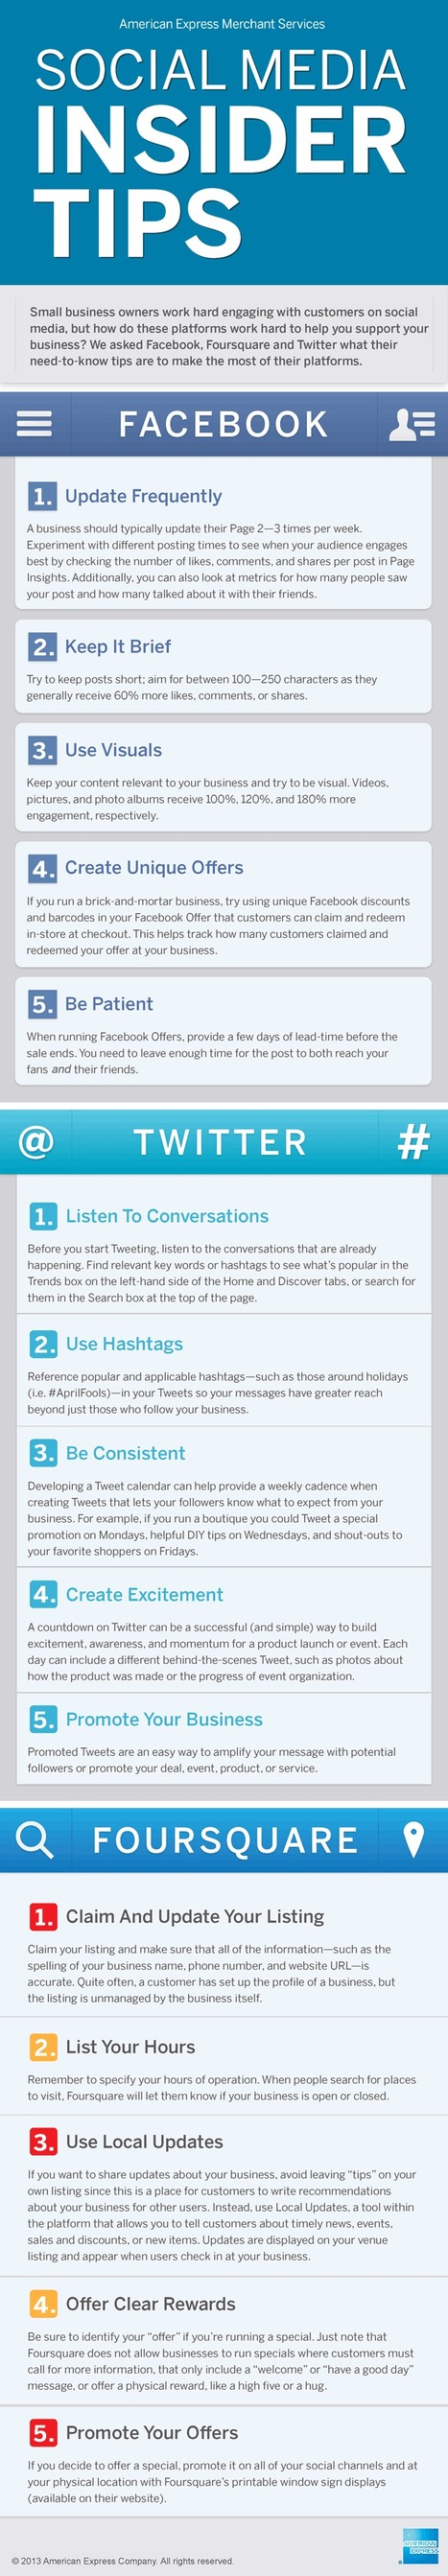 Social Media Insider Tips | Time to Learn | Scoop.it